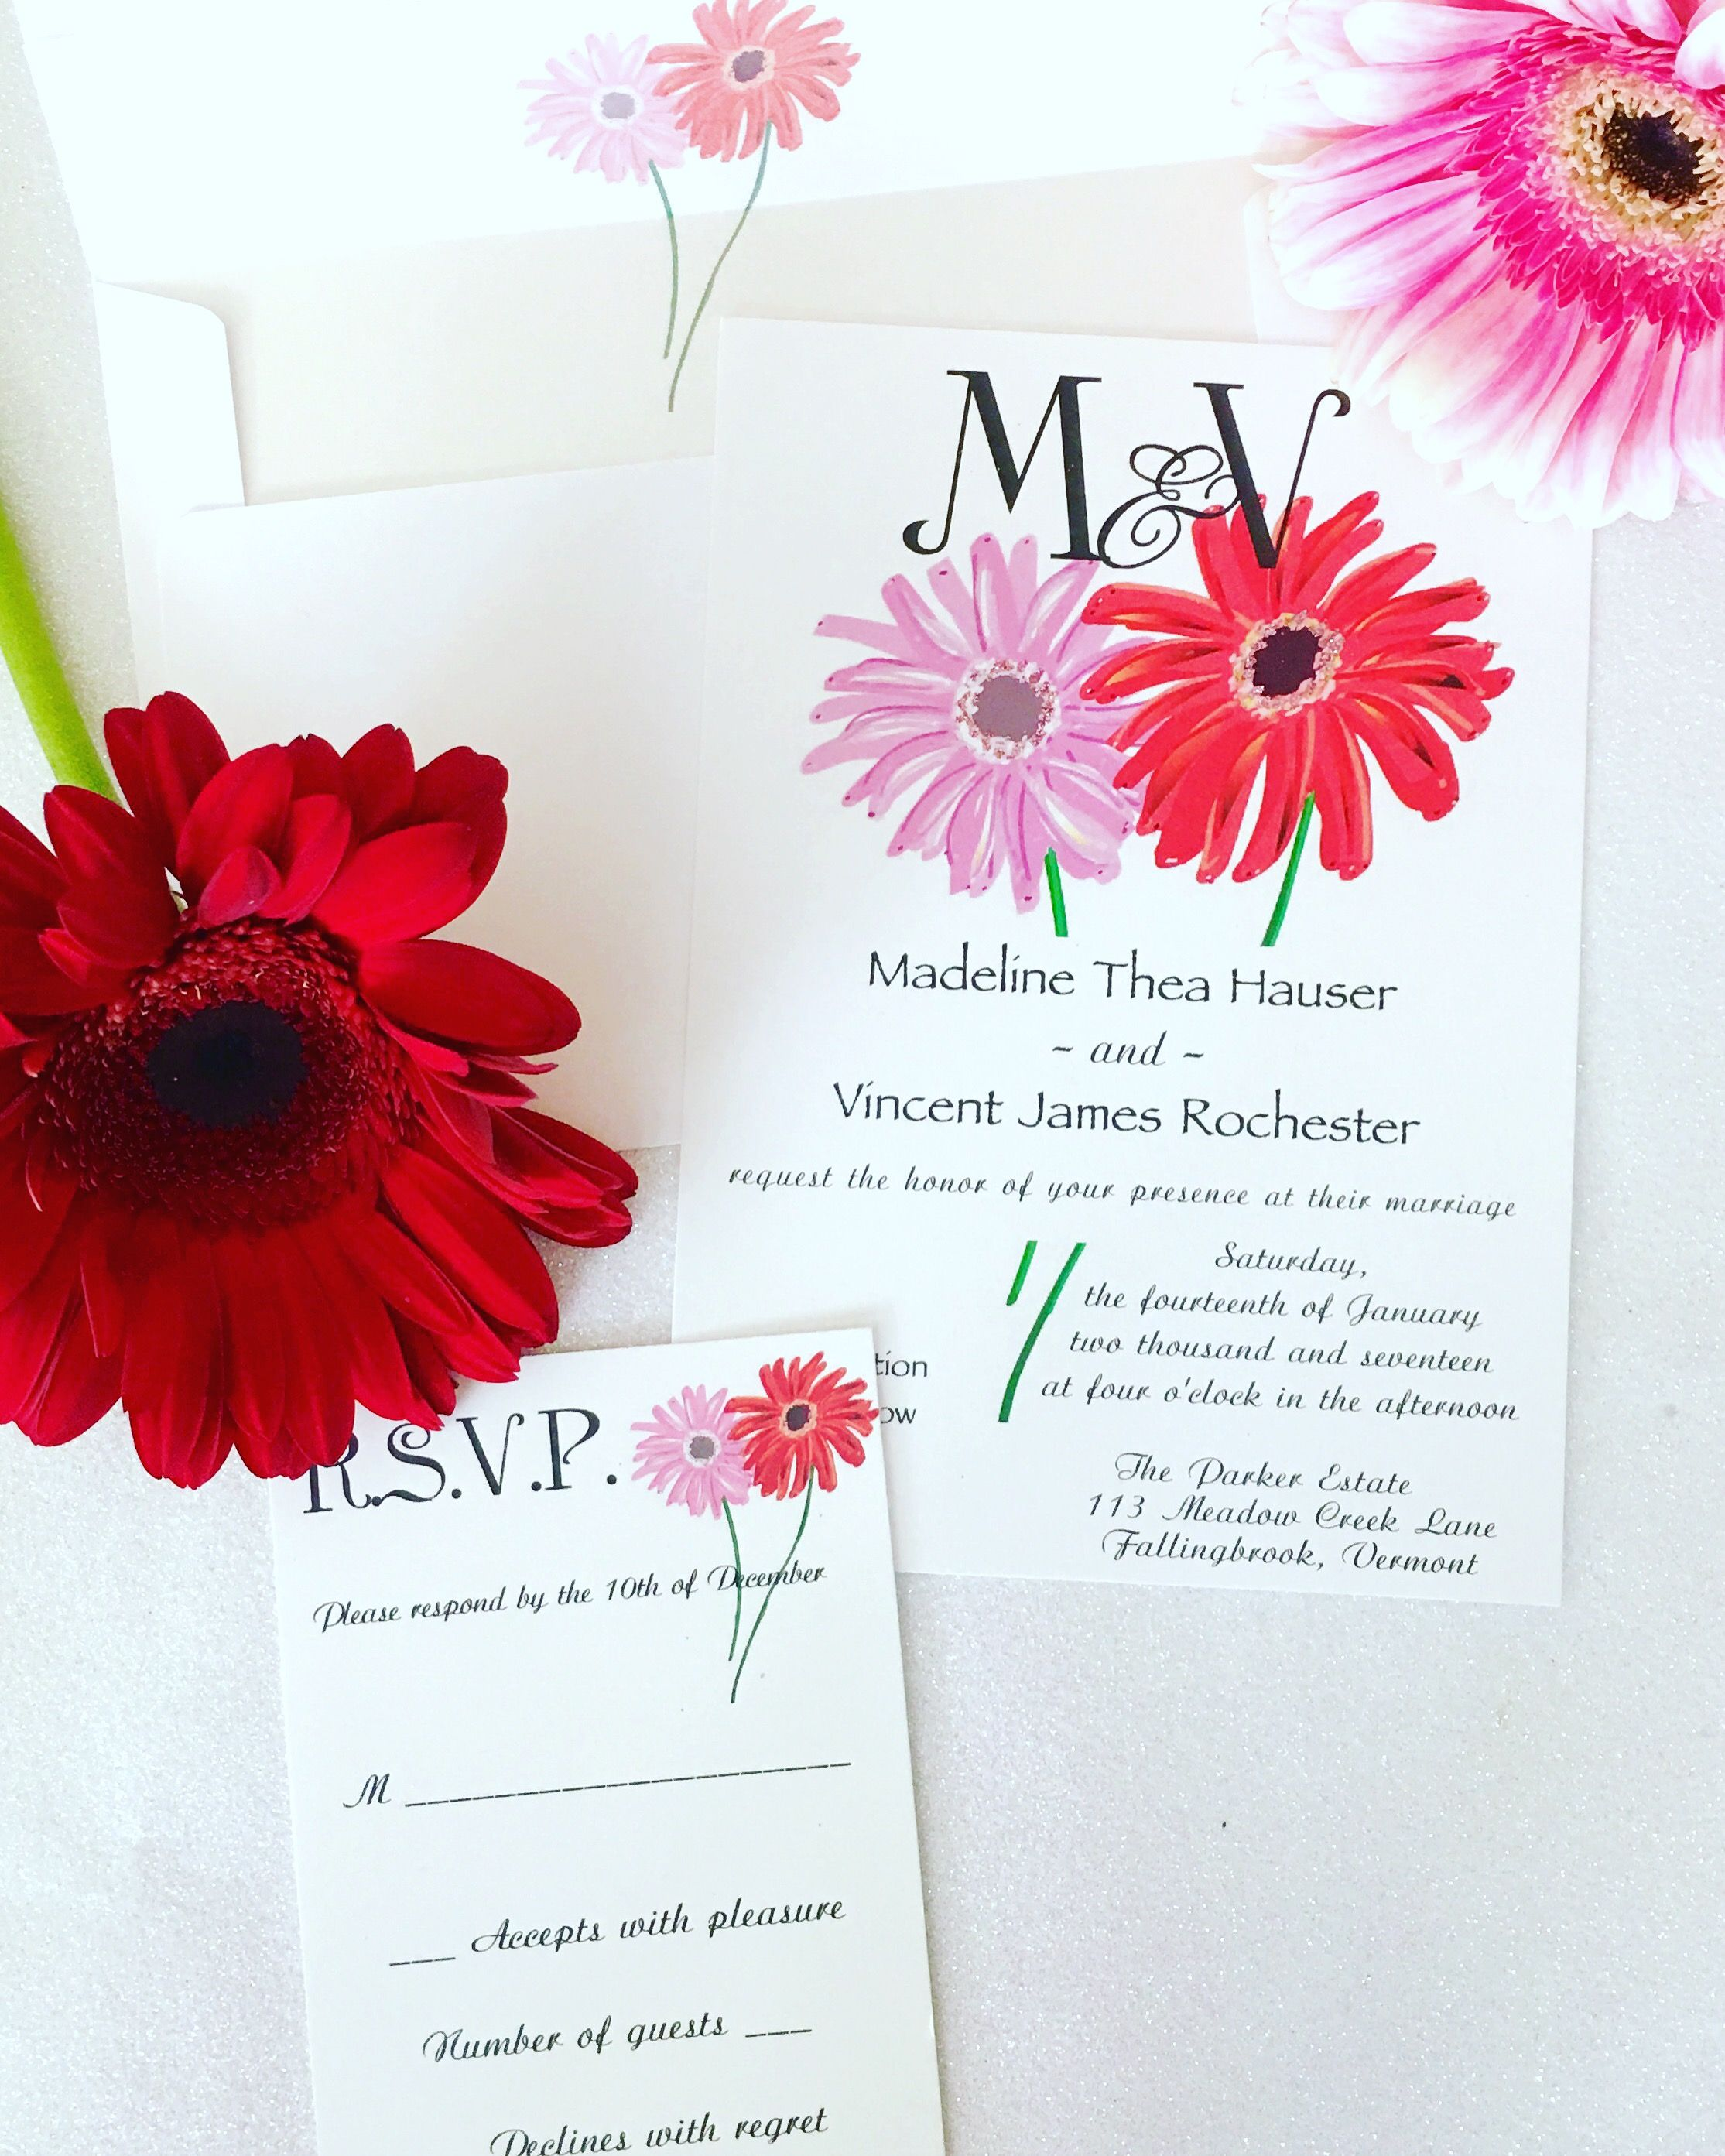 Outstanding Bella Wedding Invitations Gallery - Invitations and ...